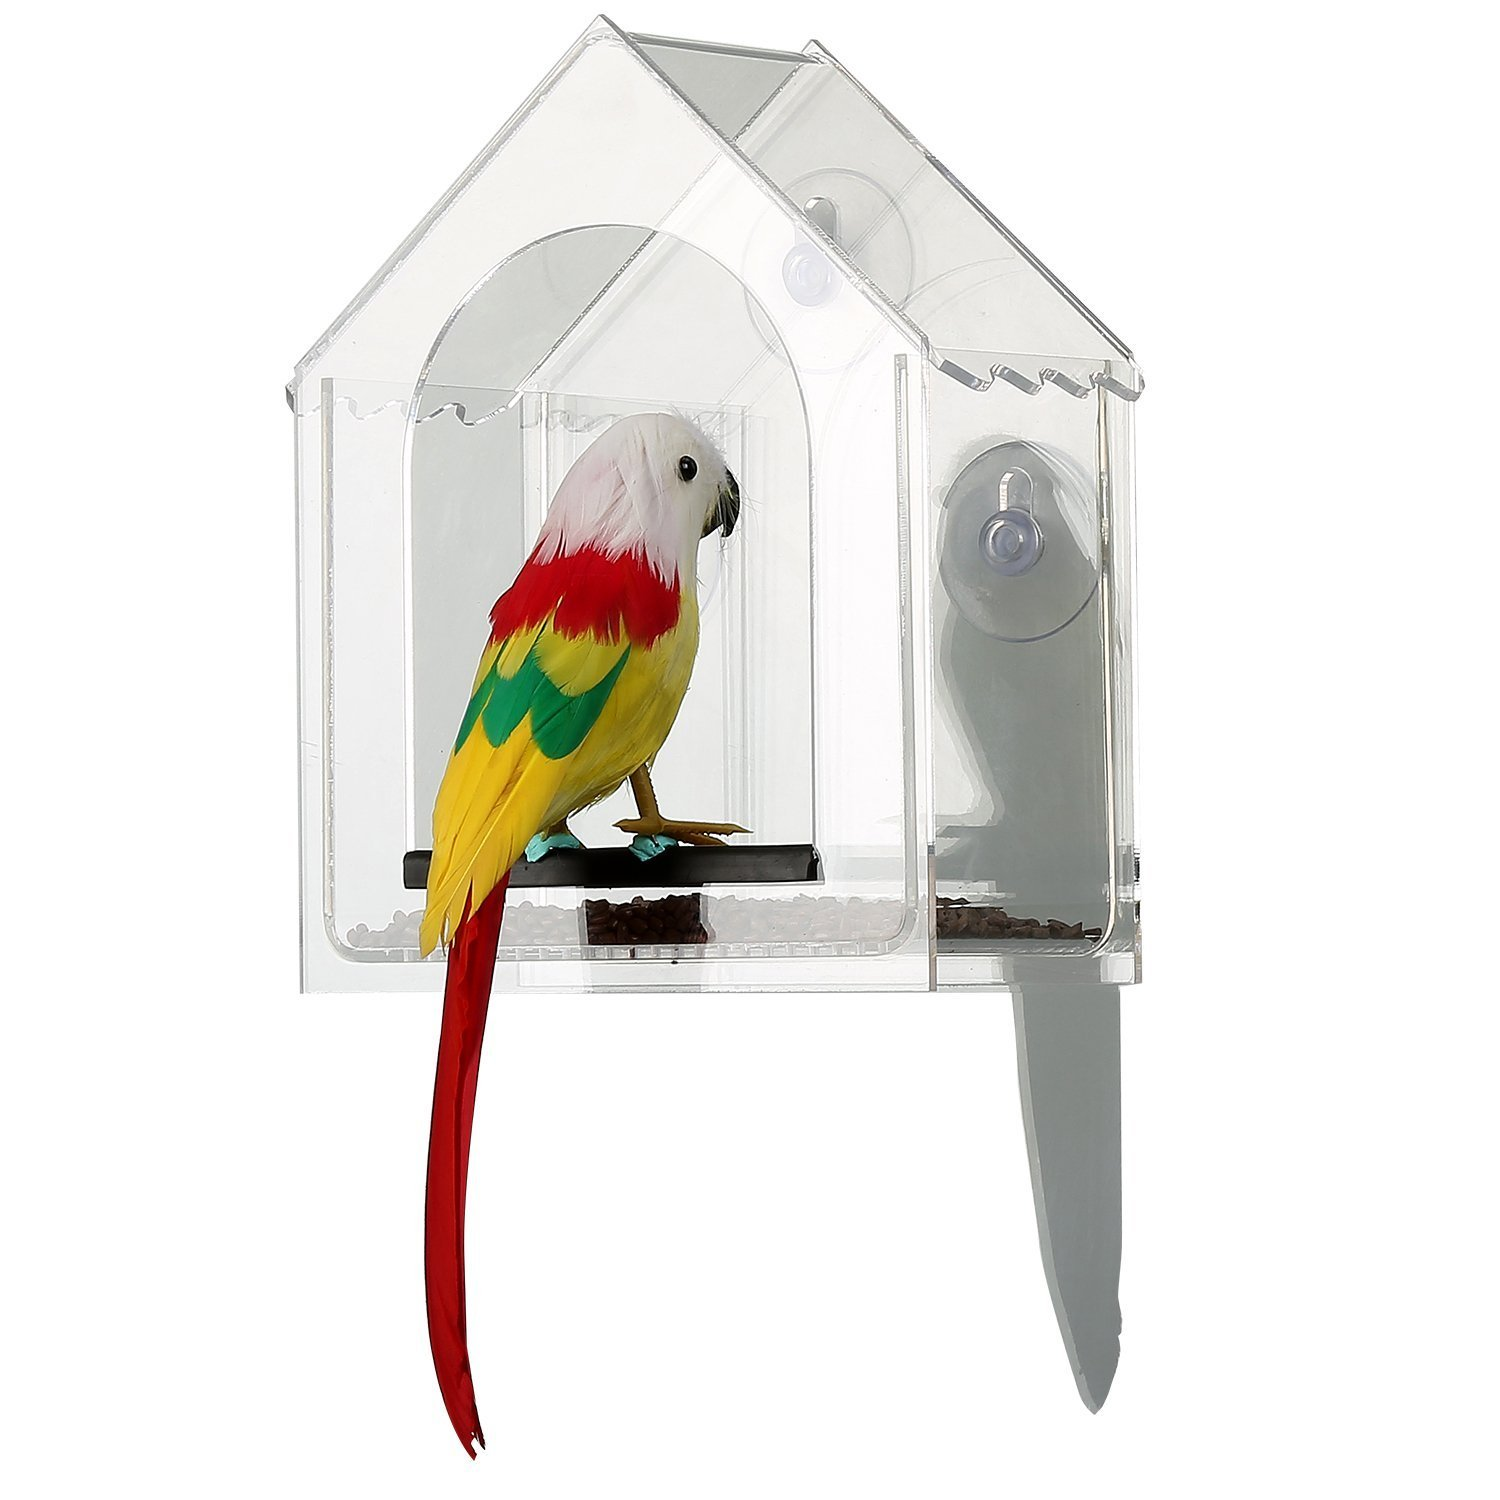 JDONOW Transparent Acrylic Proof Water House Shape Window Bird Feeder with 3 Strong Suction Cups,Drain Holes for Fun Educative Home Bird Watching